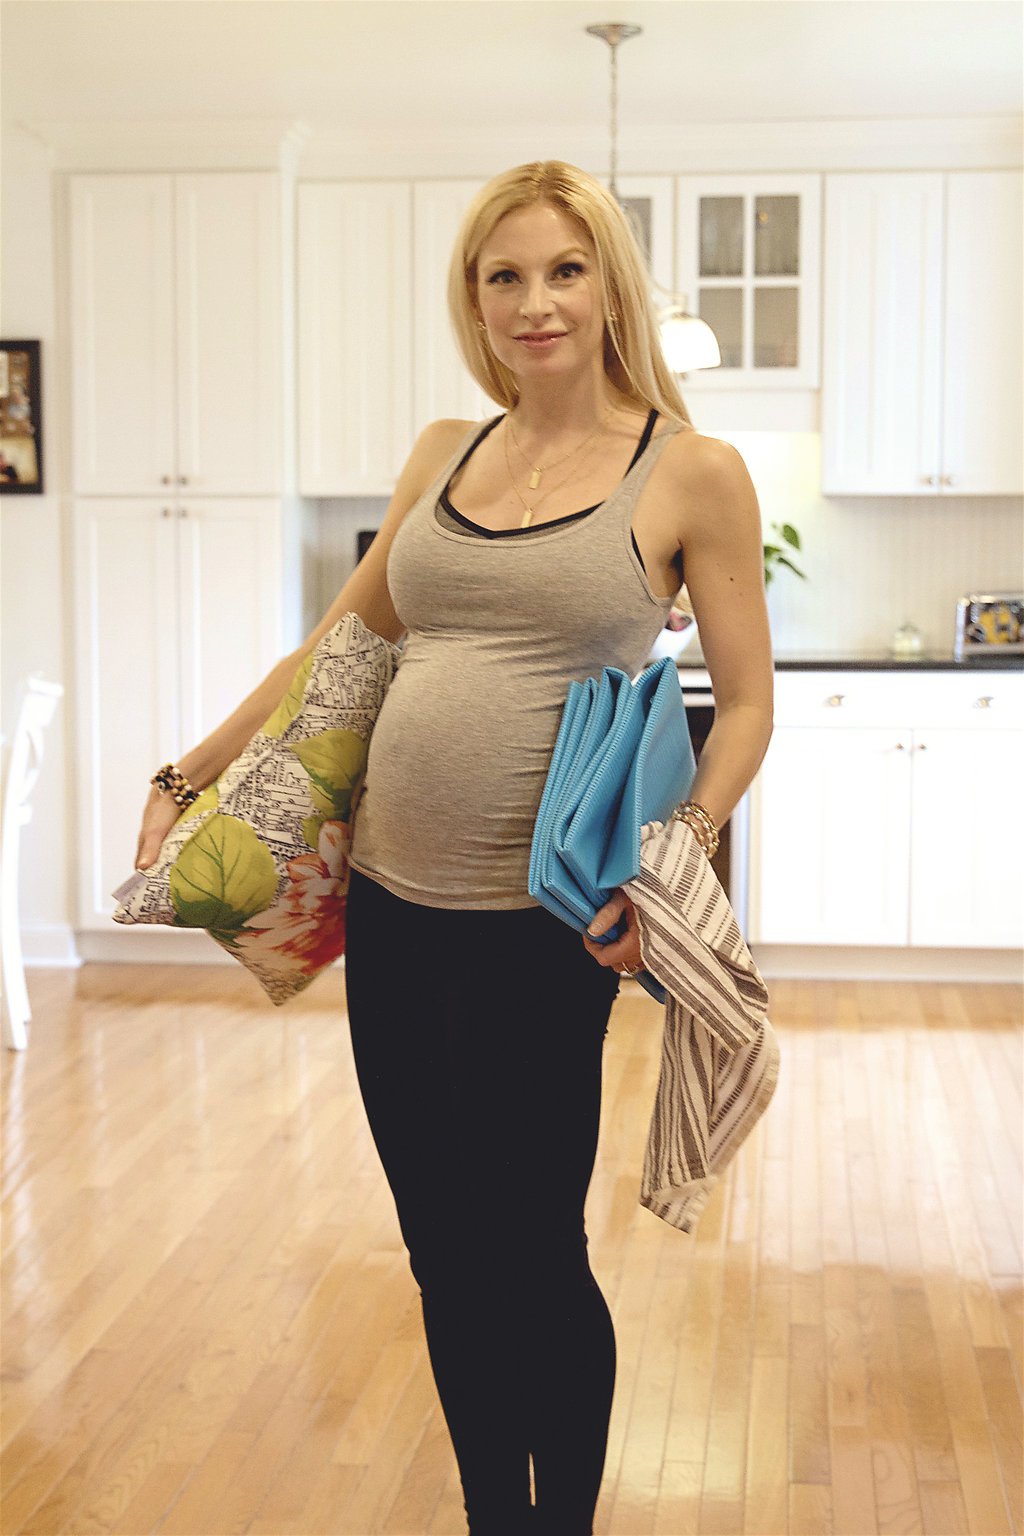 Pregnancy Workout Tips Chelsea Charles via Count Me Healthy